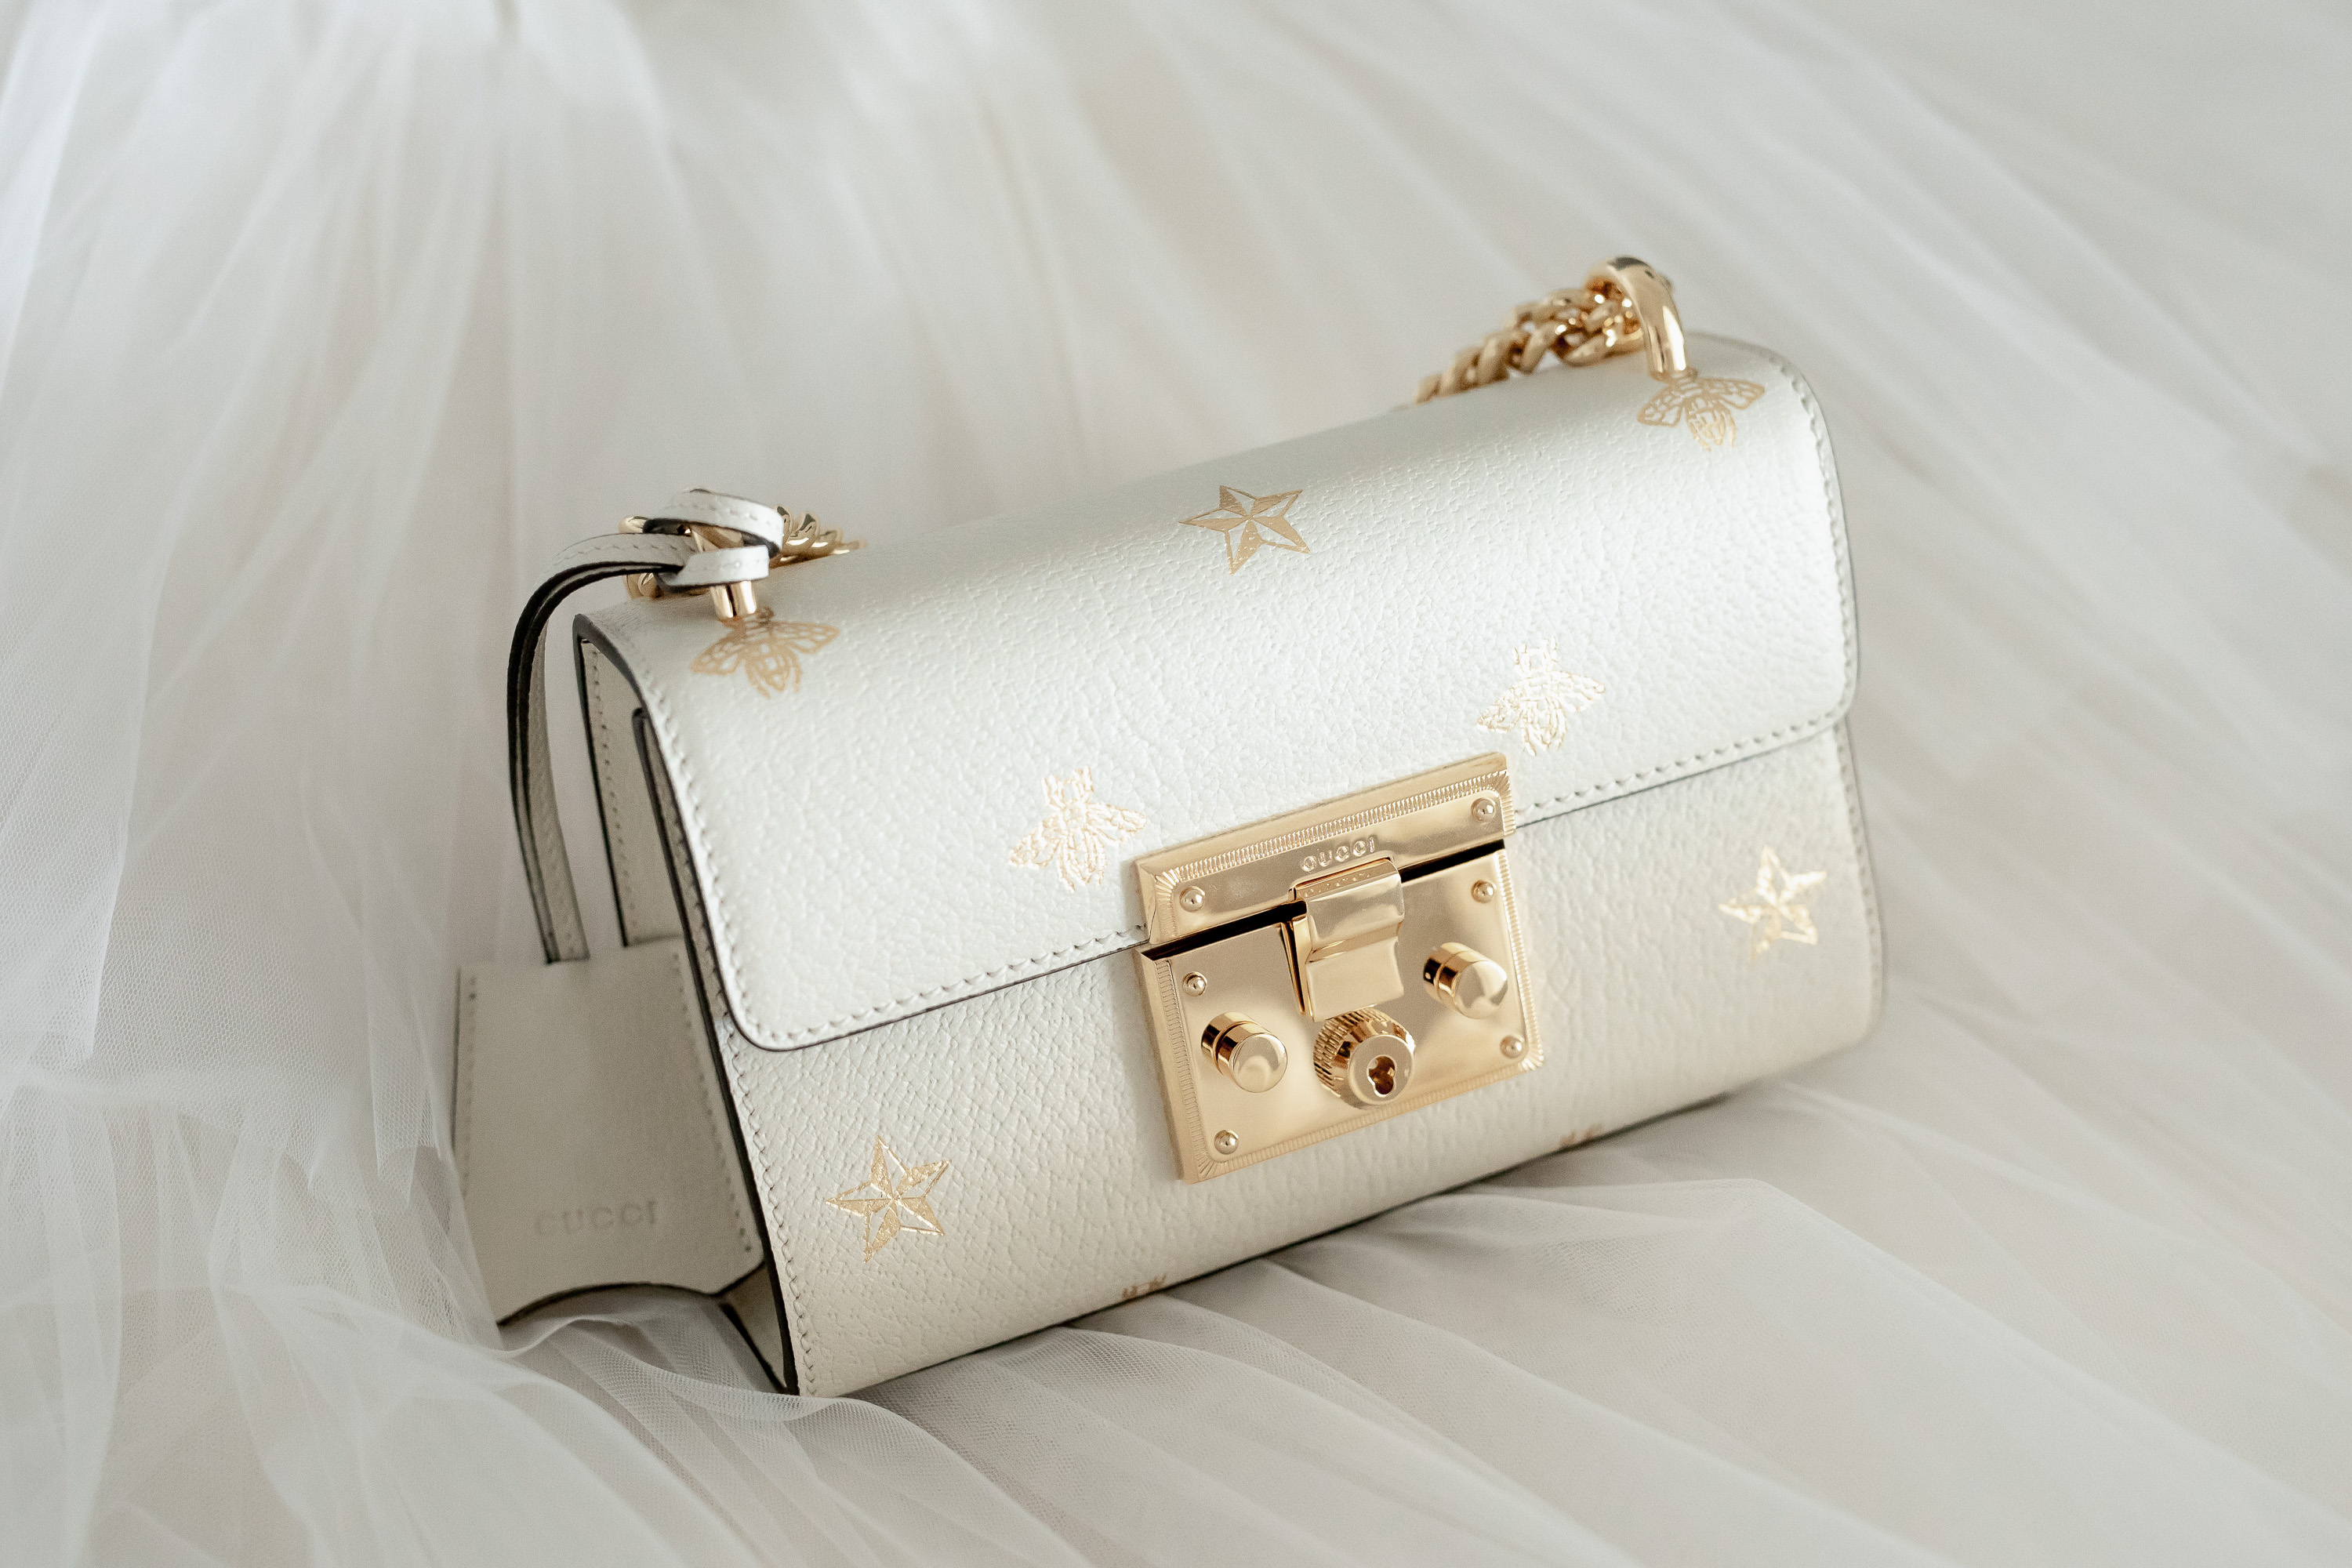 Gucci Bag Gold and Cream